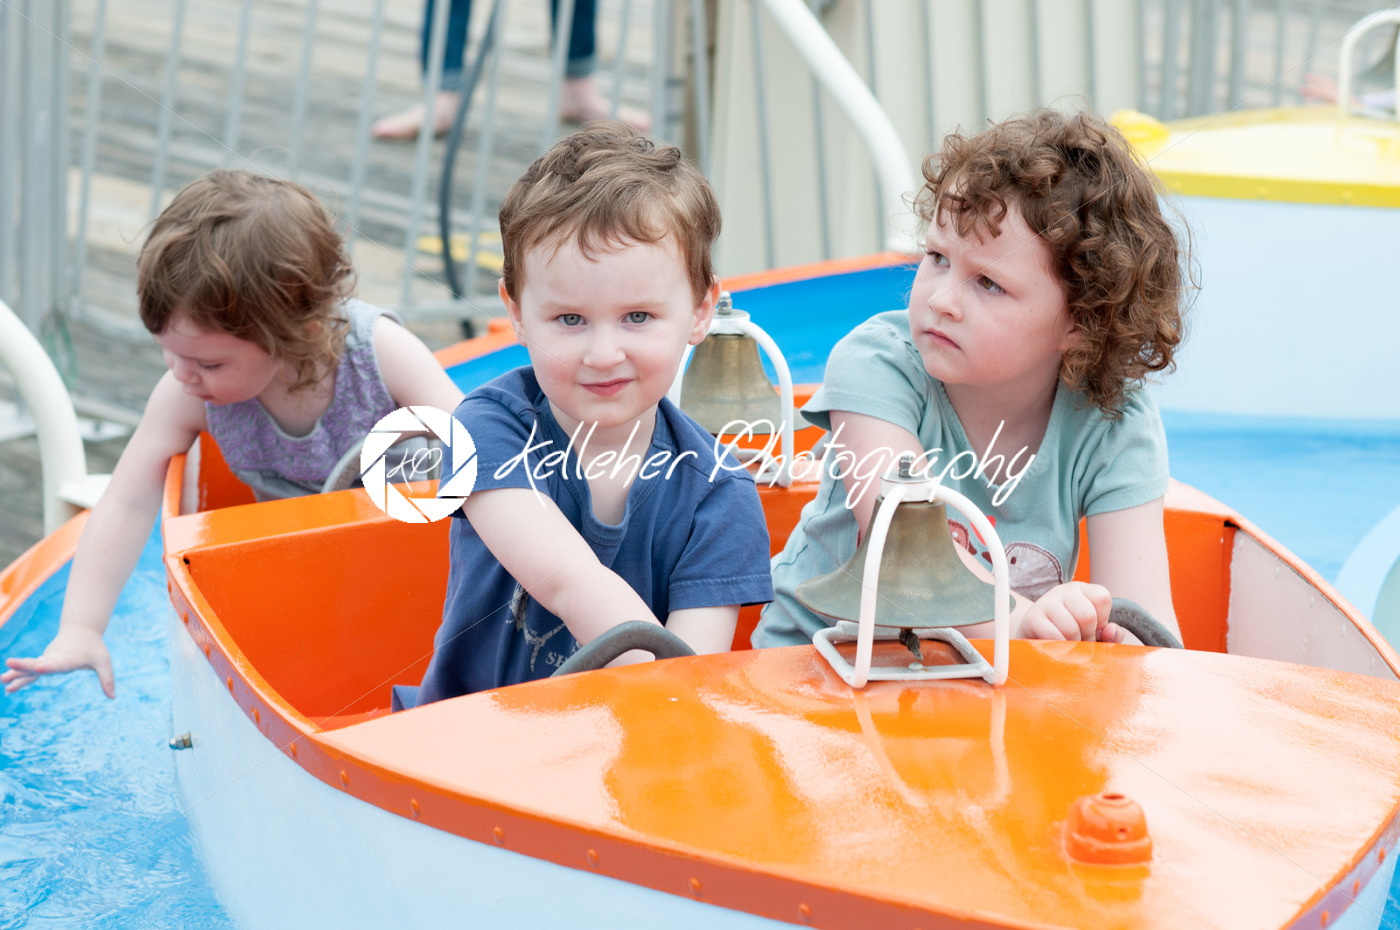 Young toddler sibblings having fun on boardwalk amusement ride - Kelleher Photography Store